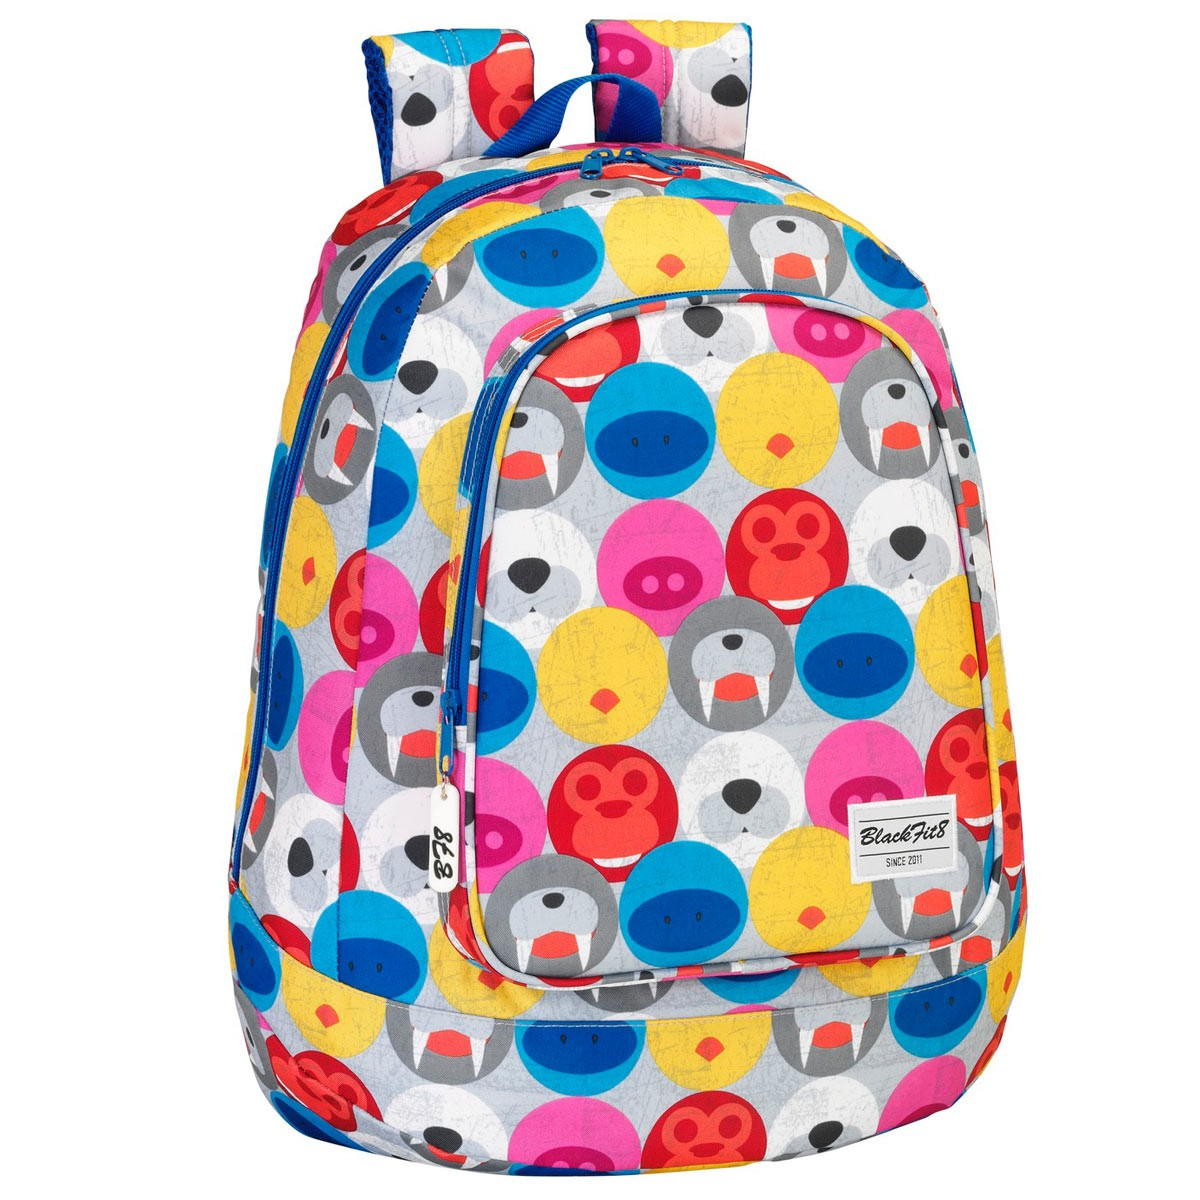 BlackFit8 Large Backpack Day Pack Teddy Friends